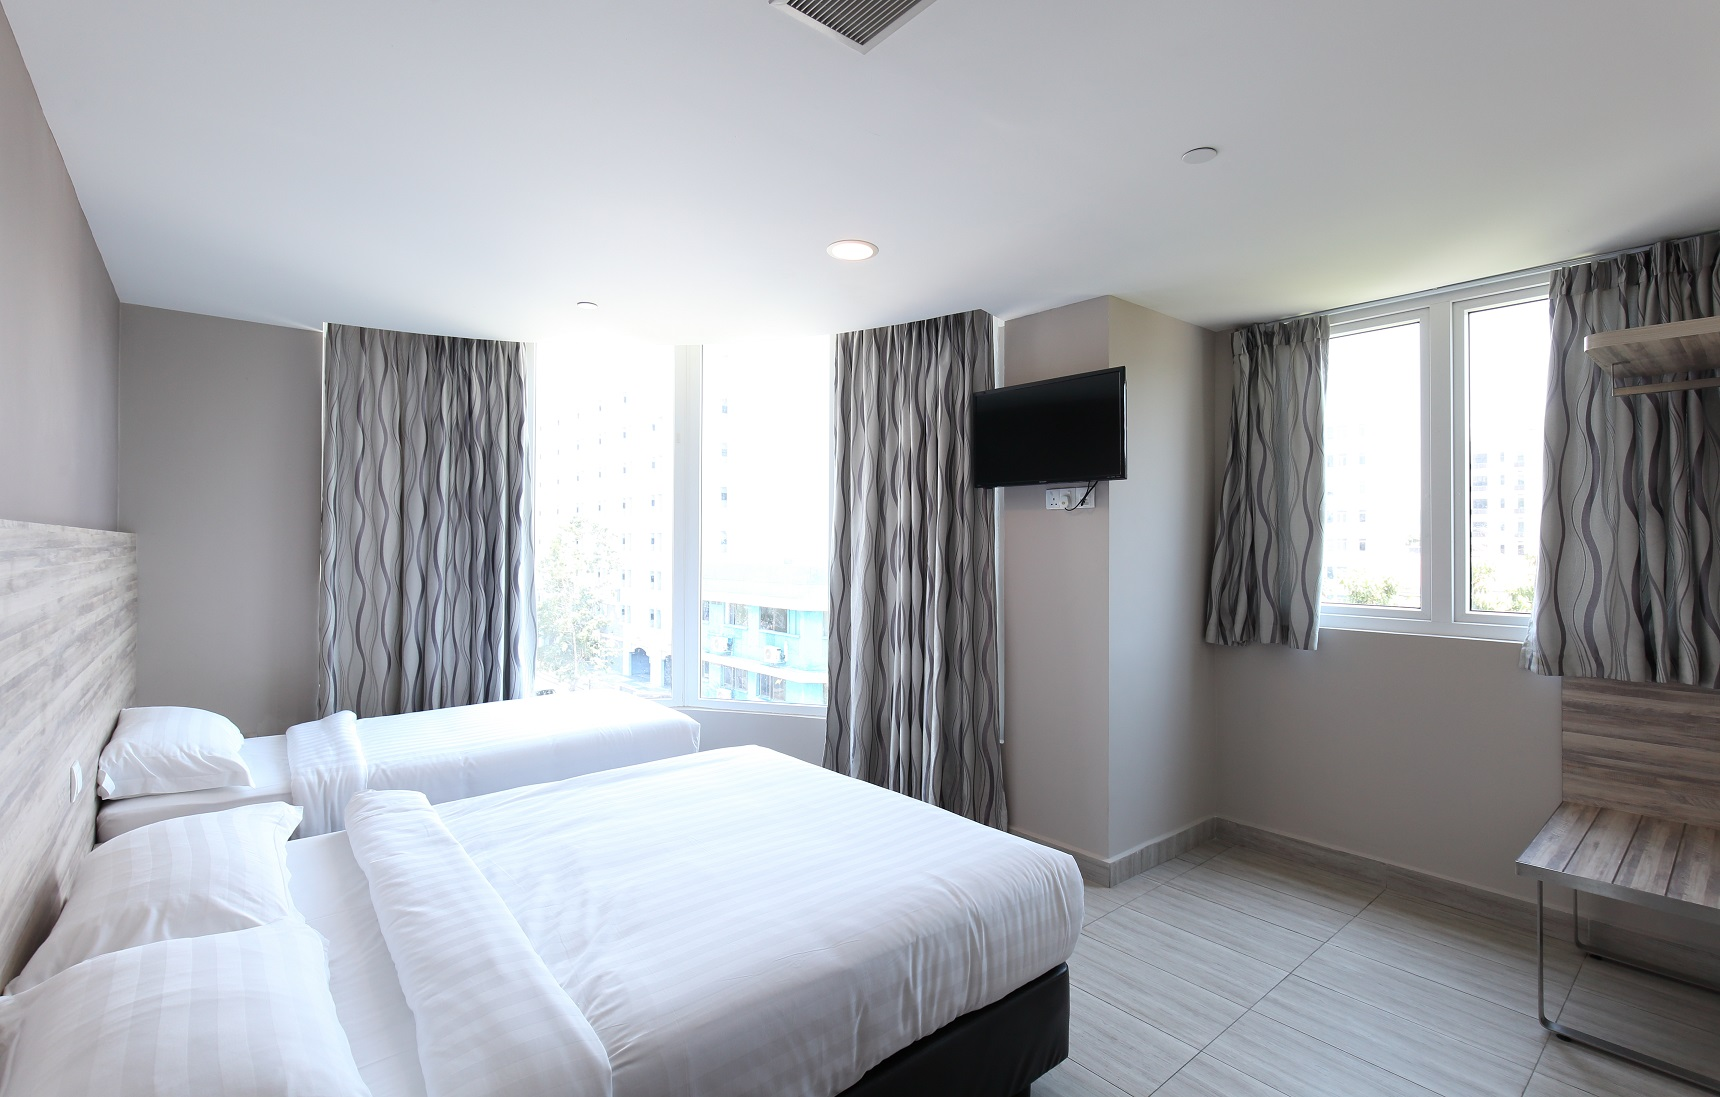 """One of the biggest rooms among the hotels in Geylang is the one at ibis budget Crystal which has a 270-degree corner view and which has been dubbed """"The Orchard Road of Geylang"""" (Photo: Samuel Isaac Chua/EdgeProp Singapore) - EDGEPROP SINGAPORE"""